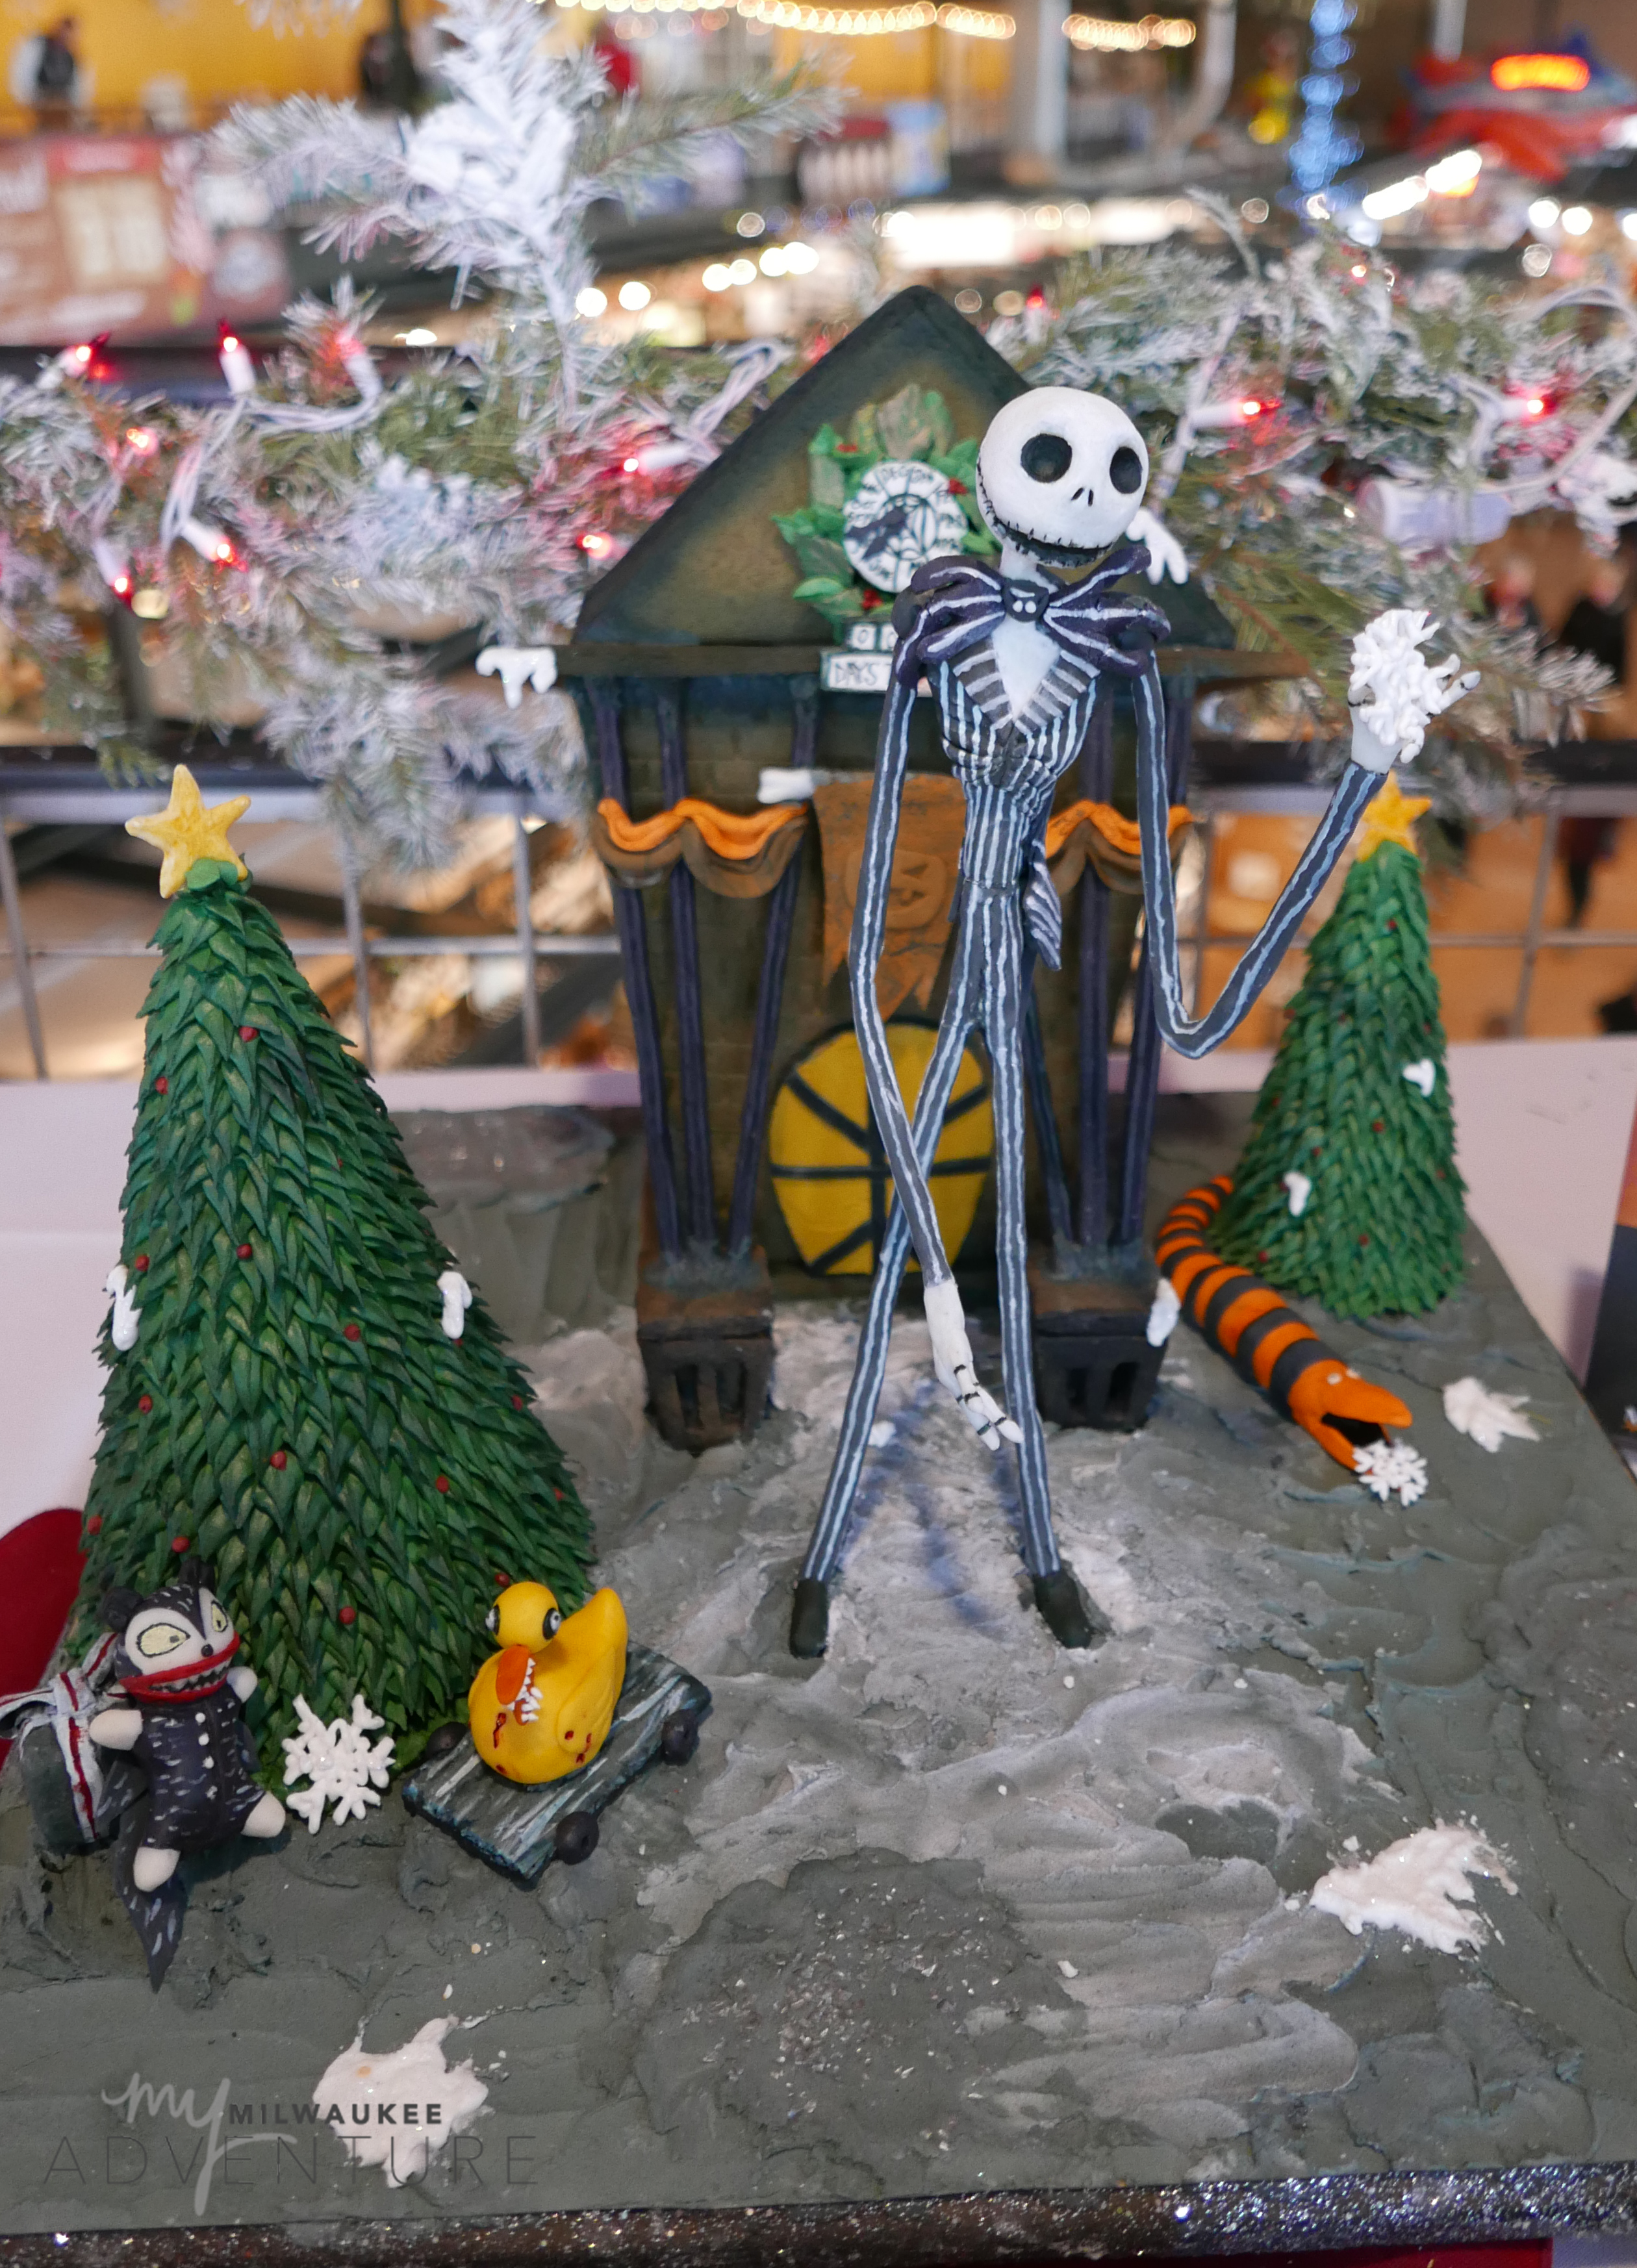 nightmare before christmas gingerbread house - Nightmare Before Christmas Gingerbread House